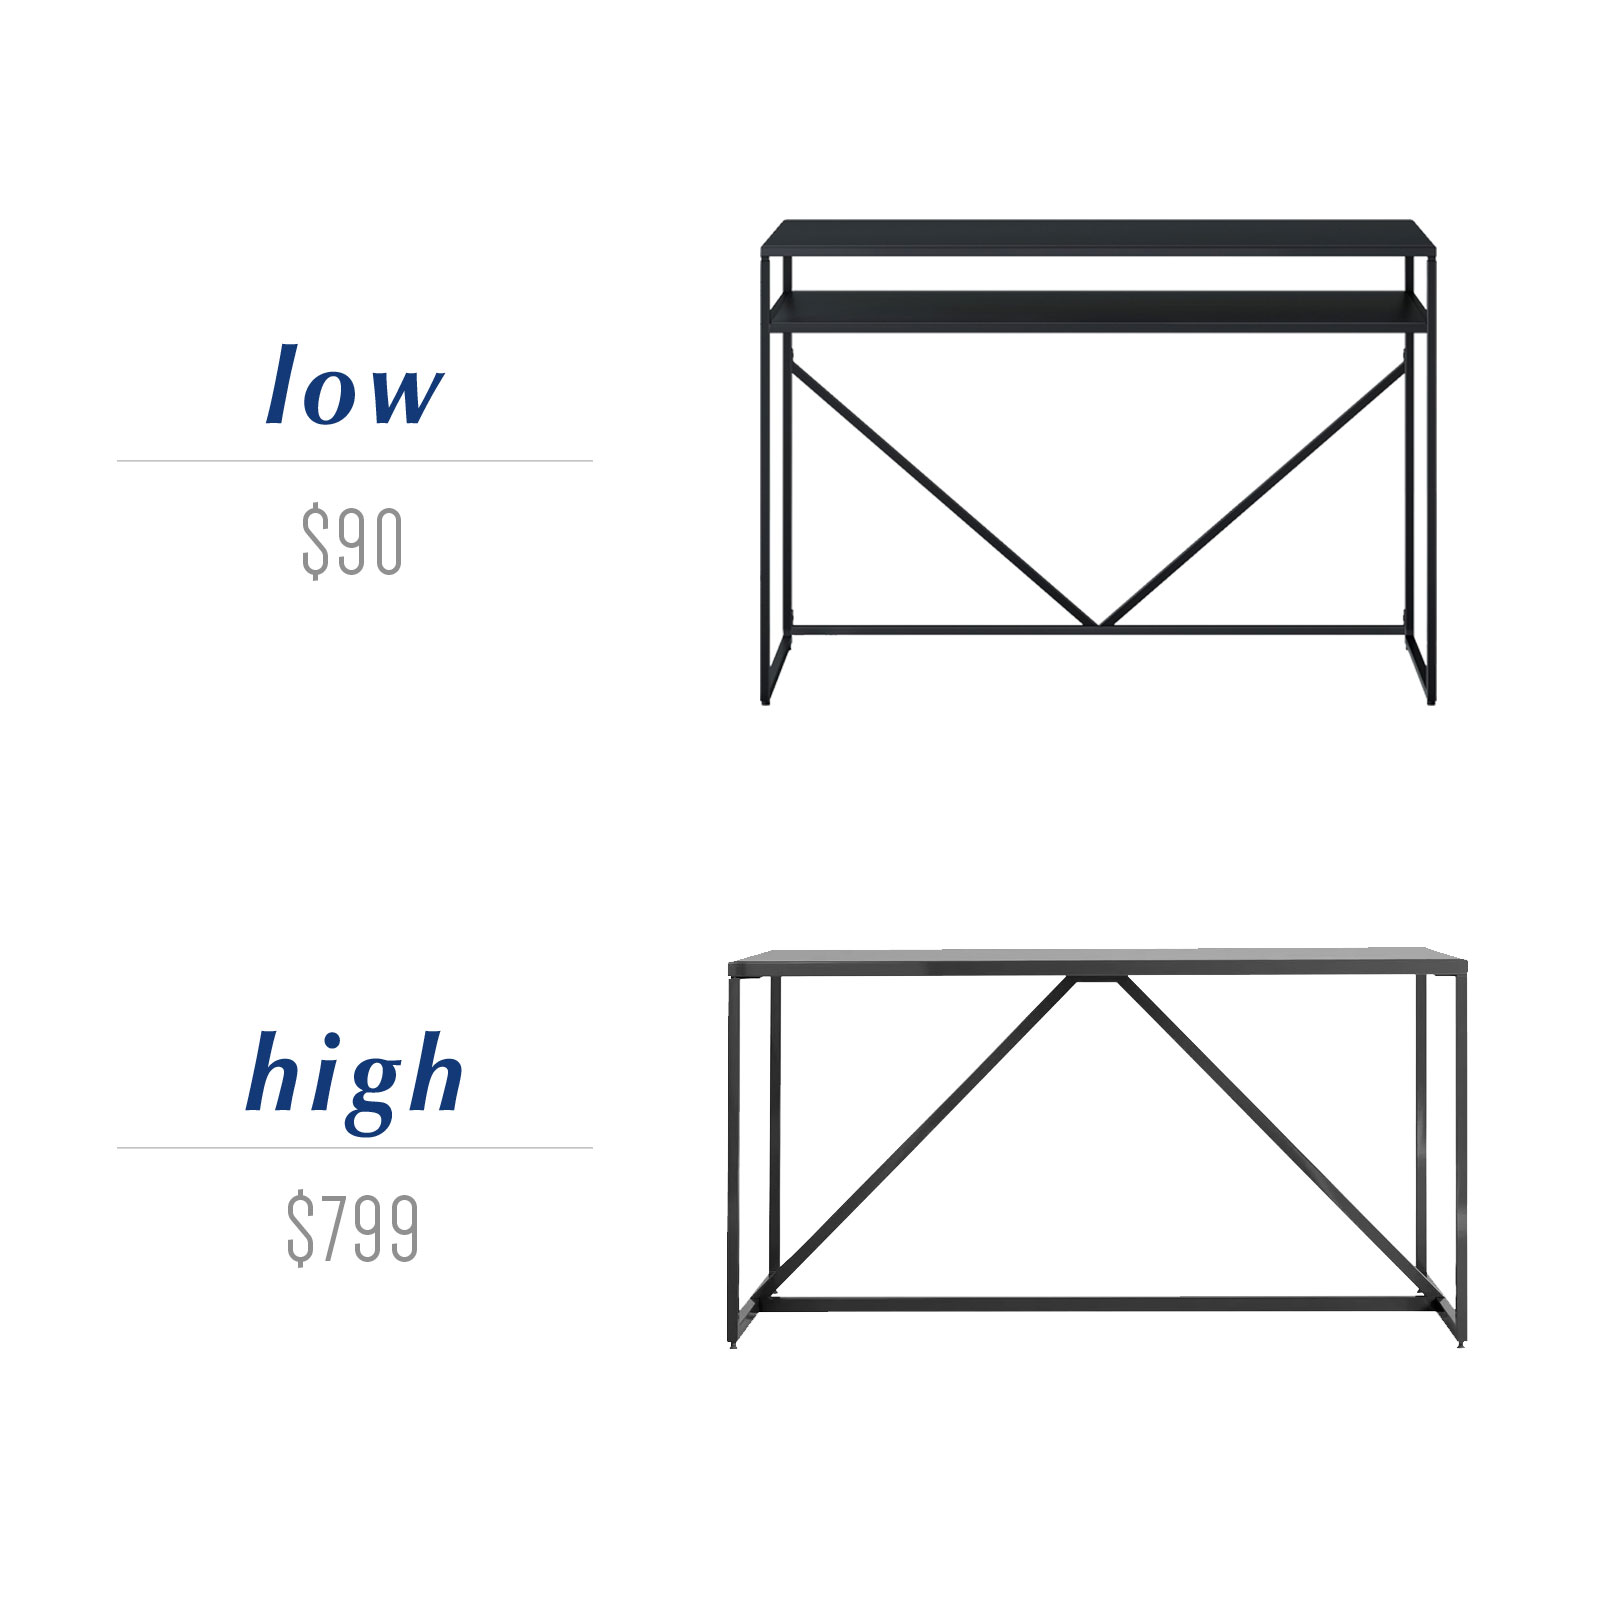 Get the look for less or decide to splurge! Come see the budget-friendly and spend-worthy pieces of furniture in this blog post including the high/low sources for this modern black desk.